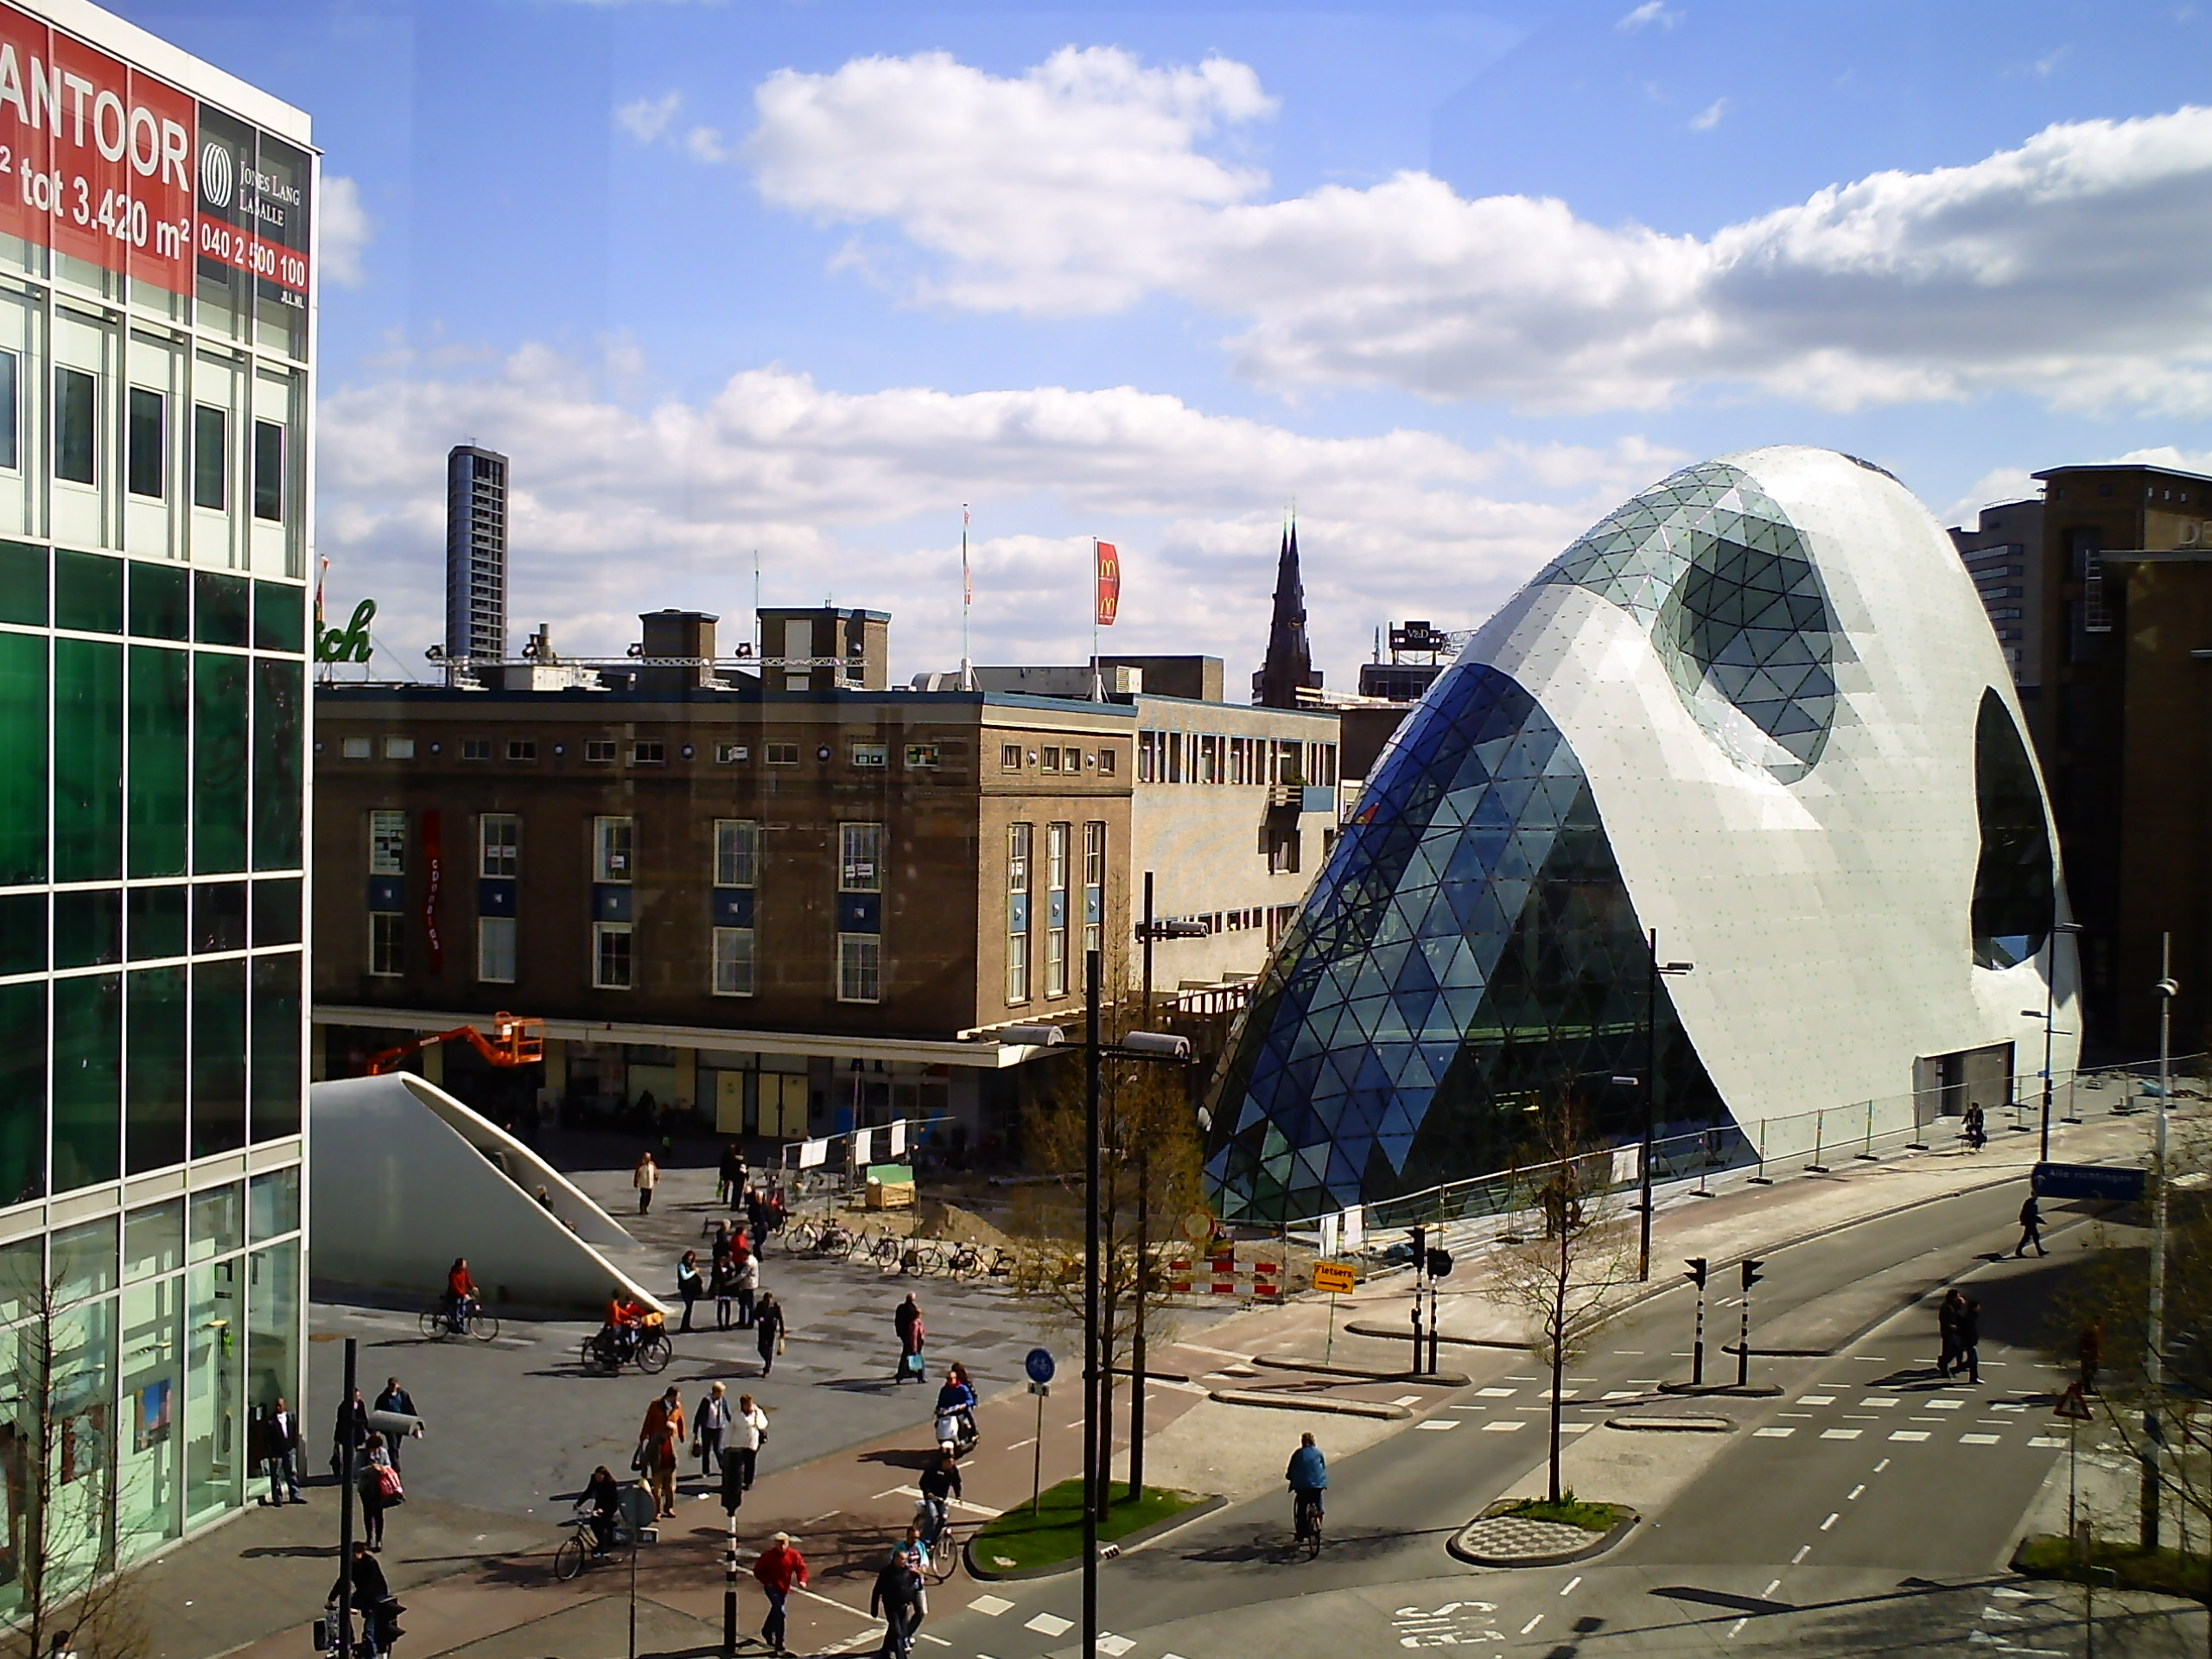 The Top 10 Things To See And Do In Eindhoven, The Netherlands